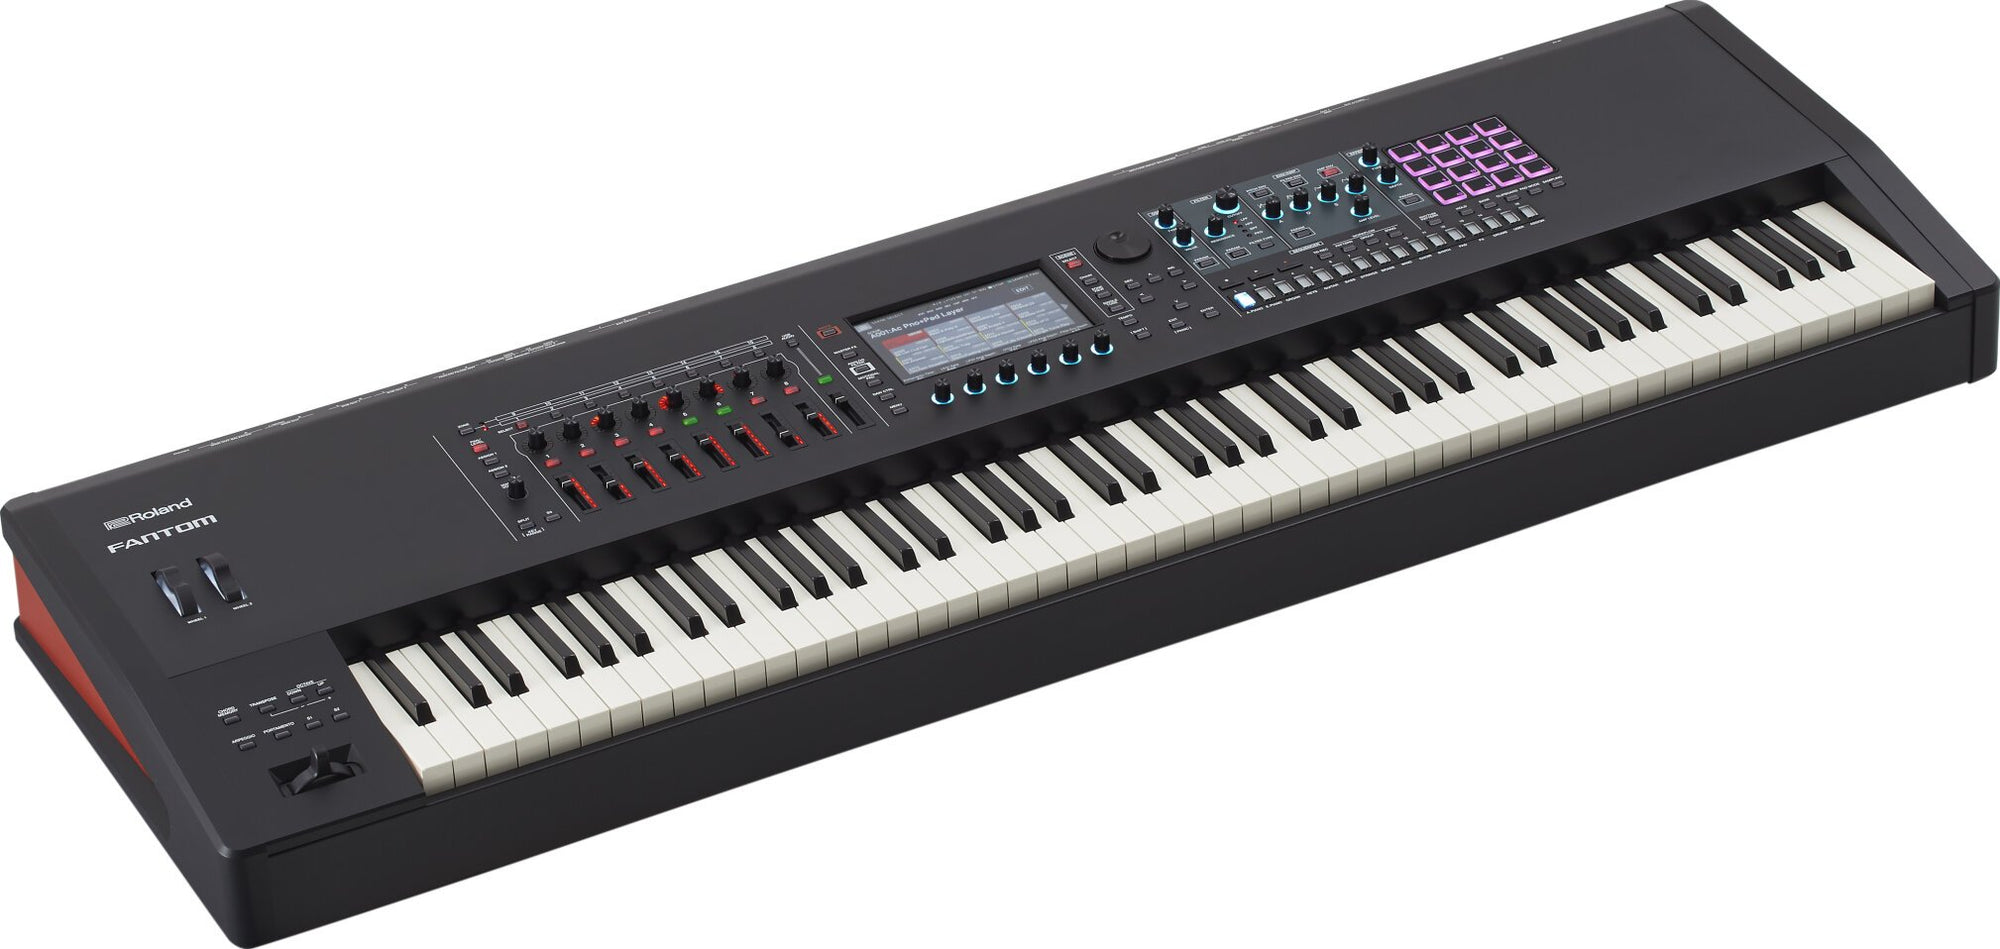 Roland Fantom 8 Music Synthesizer Workstation Keyboard, 88-Key